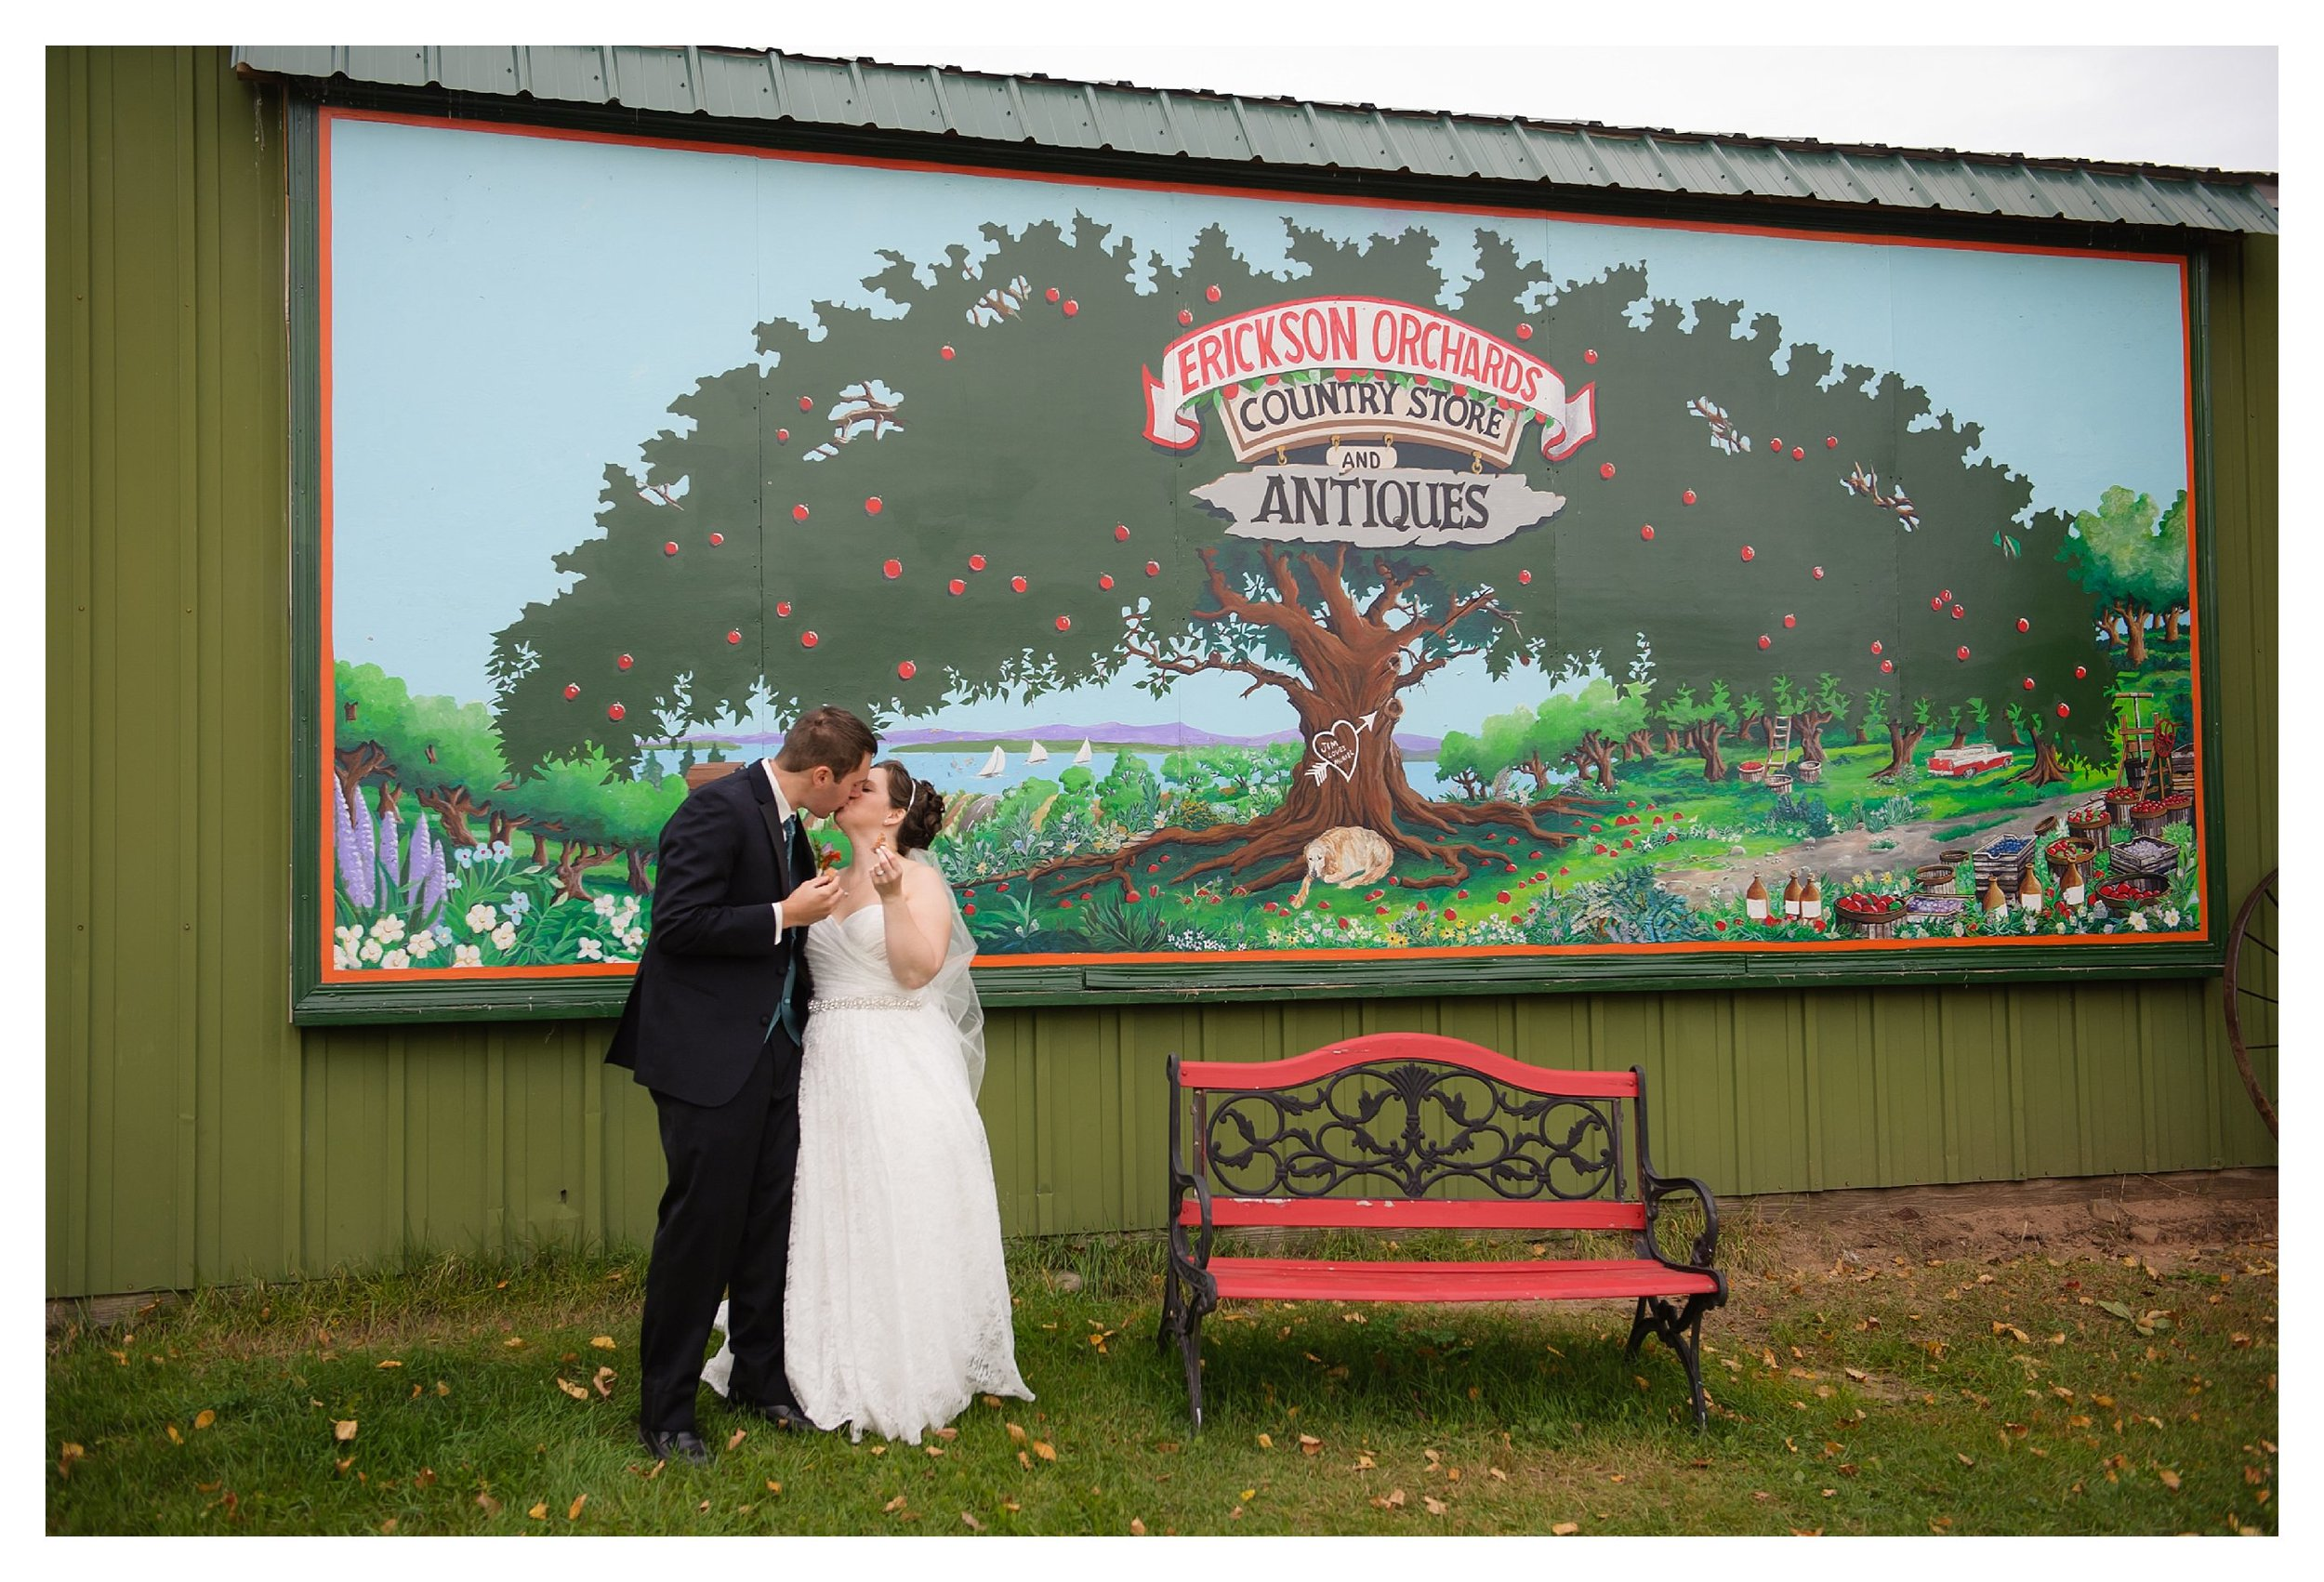 Lindstrom MN Bayfield WI Erickson Orchard wedding donuts ps139photography.com Twin cities Minnesota northwoods Bayfield wisconsin destination wedding ps 139 photography_0538.jpg